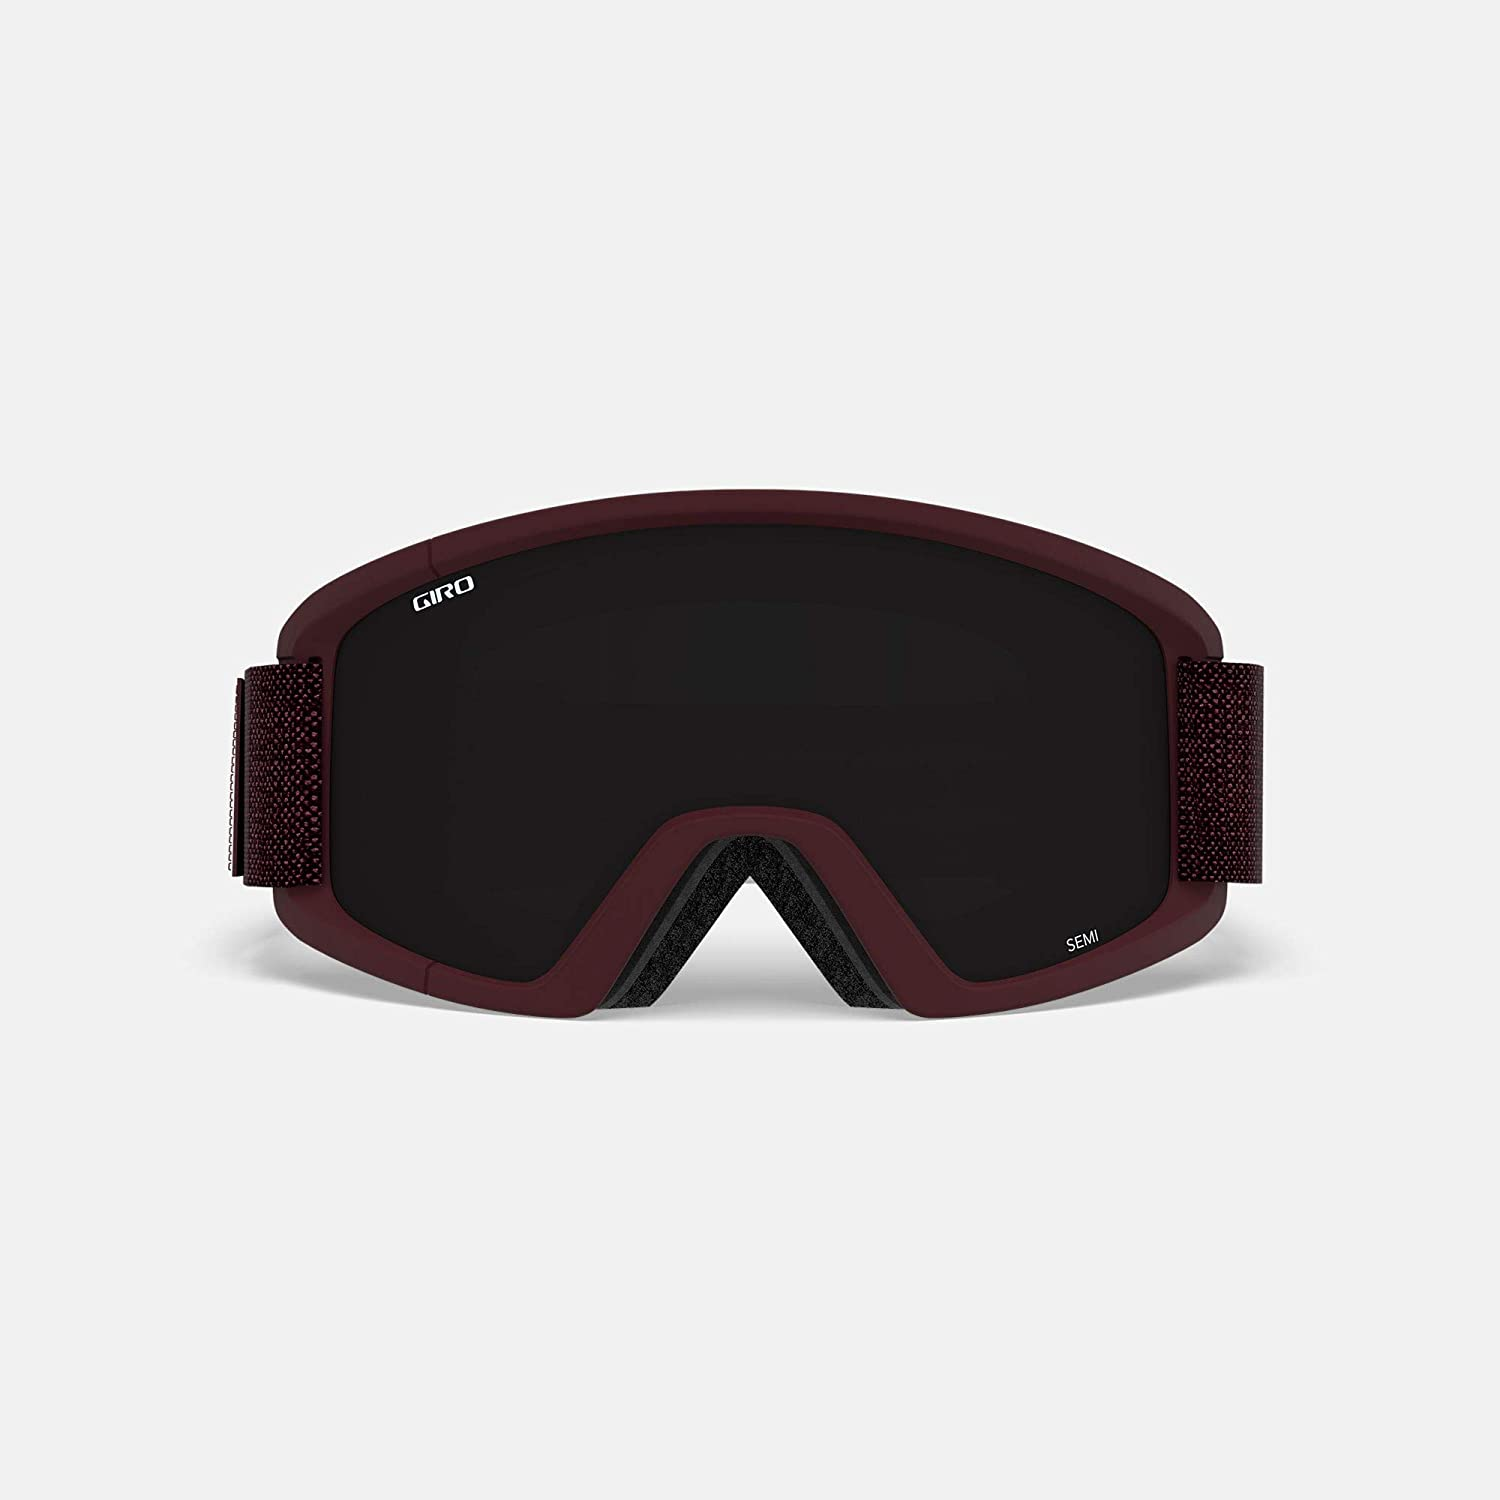 Giro Dylan Womens Asian Fit Snow Goggles with 2 Lenses